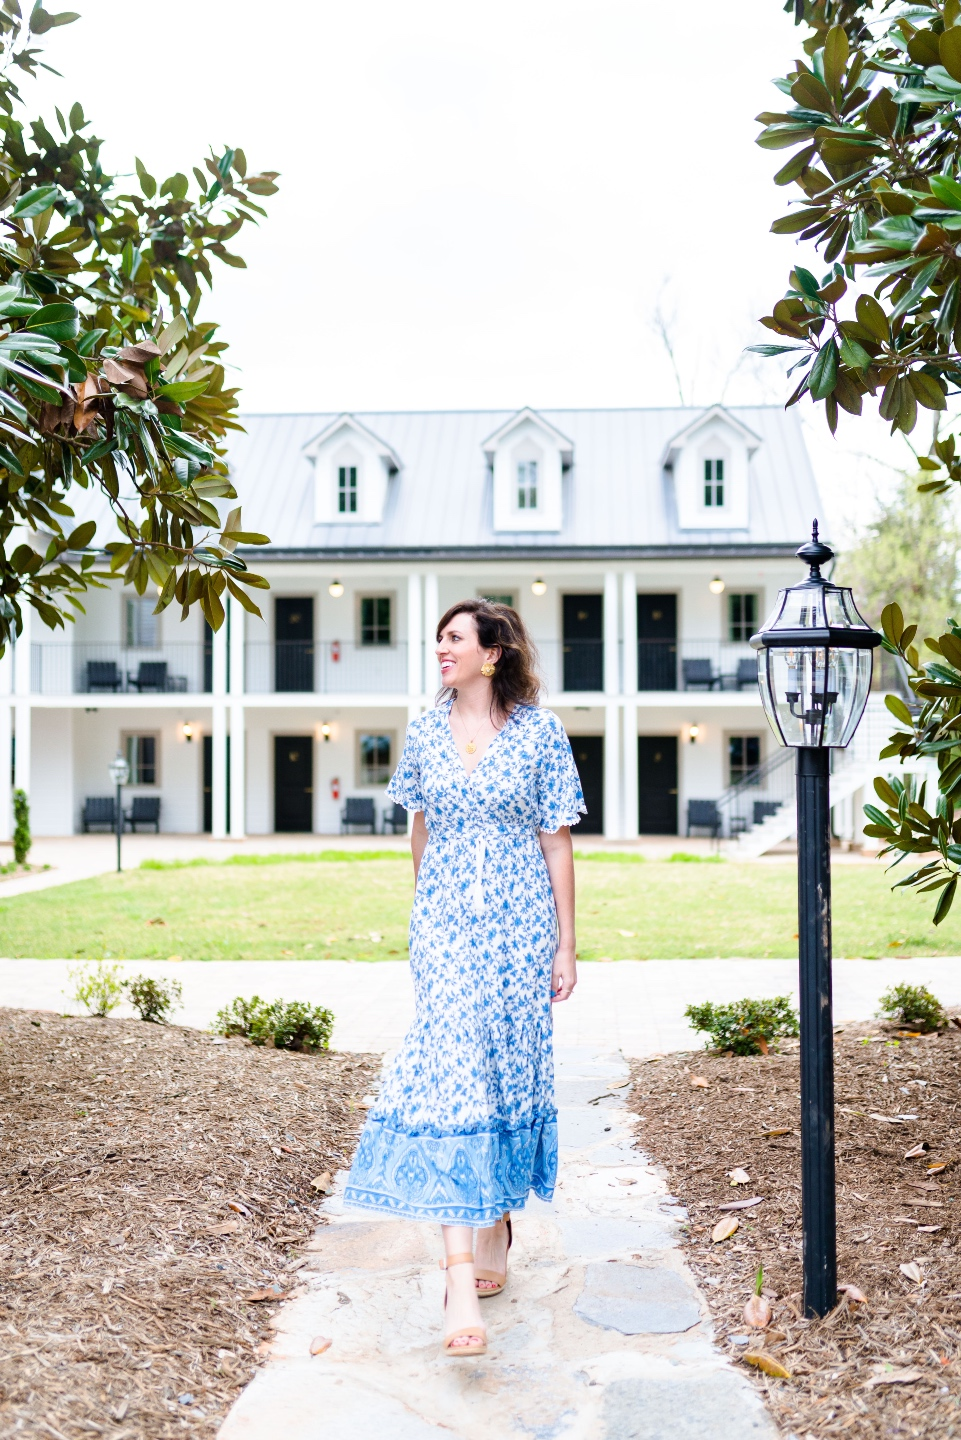 Places to Stay: The Colonial Inn in Hillsborough NC |The Colonial Inn Hillsborough NC by popular NC travel blog, I'm Fixin' To: image of a woman wearing a blue floral print maxi dress and standing outside of the Colonia Inn.